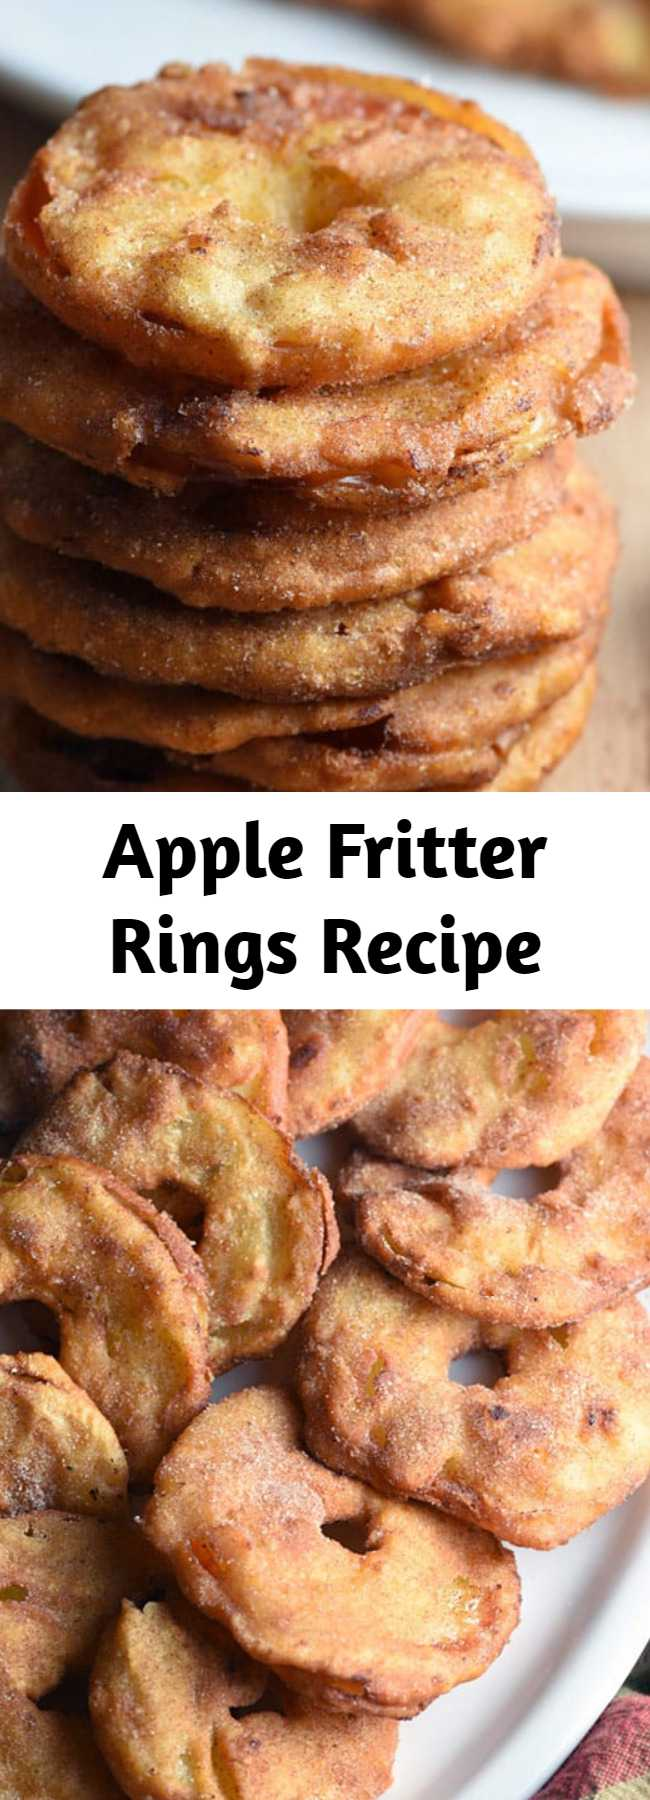 Apple Fritter Rings Recipe - These Apple Fritter Rings are a fun spin on the popular donut shop Apple Fritter. Like a sweet apple version of an onion ring! #applefritters #applefritterrings #applefritterringsrecipe #appleringsfried